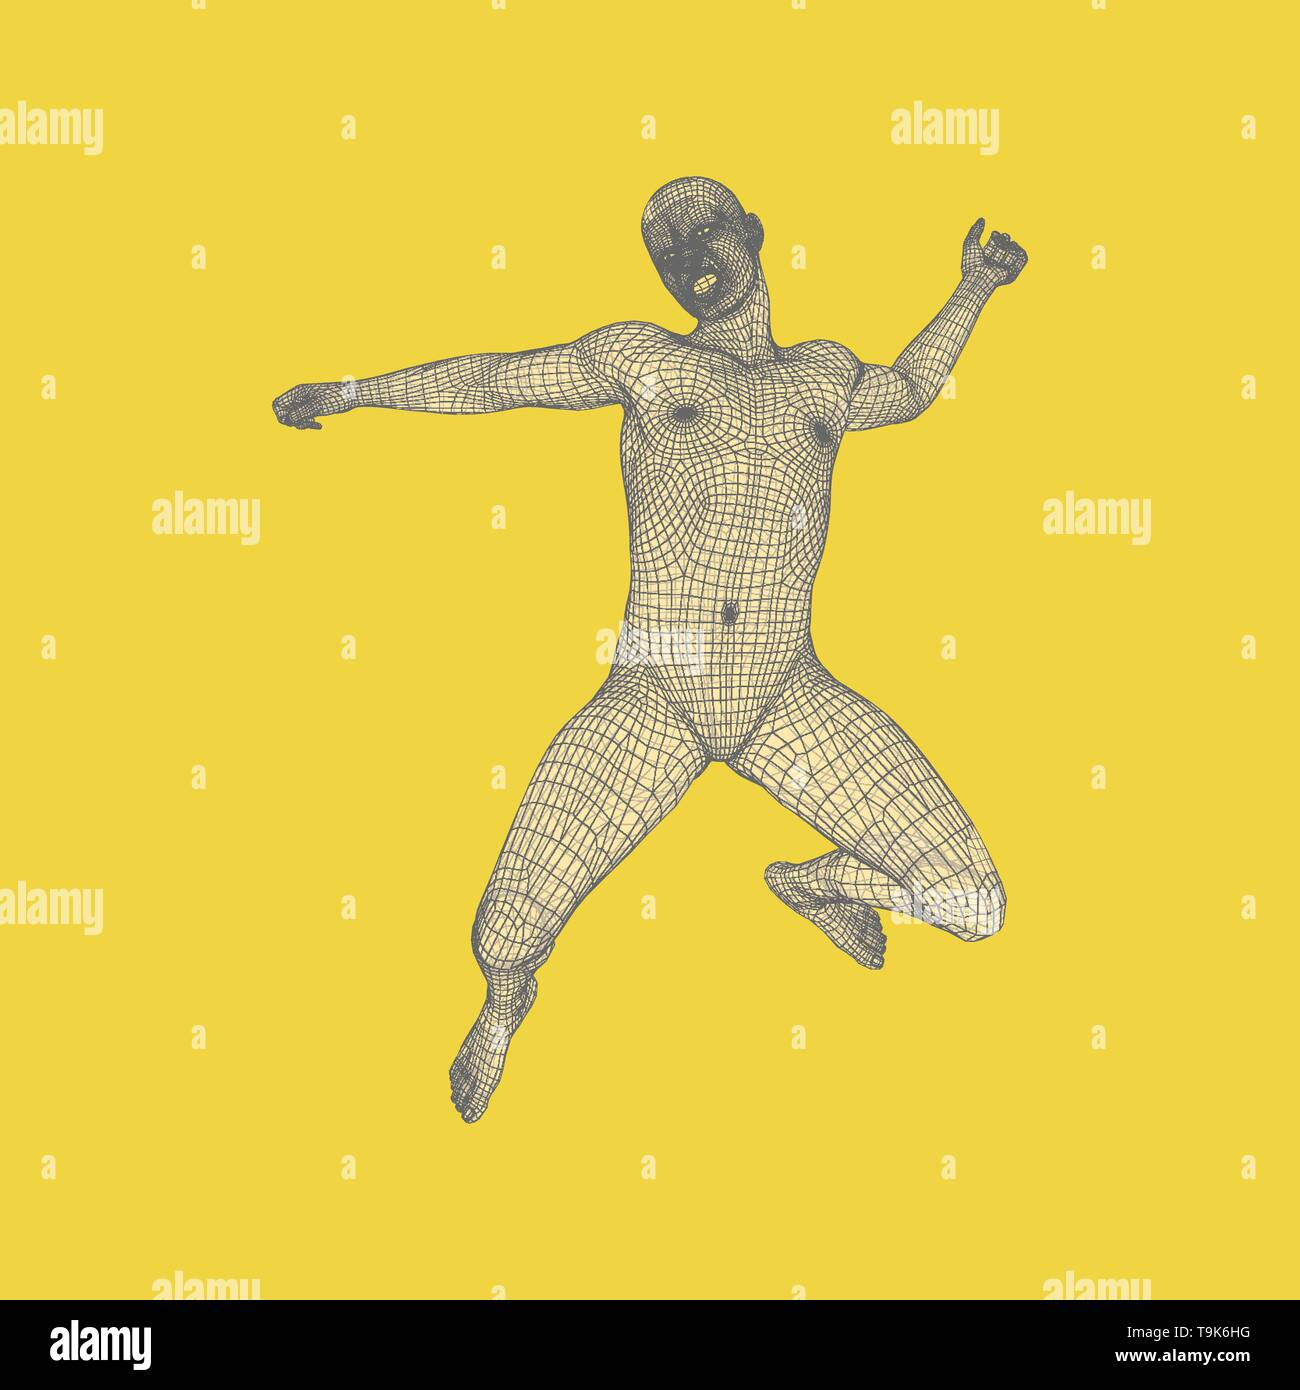 Business, Freedom or Happiness Concept. 3D Model of Man. Human Body Model. Vector Illustration. - Stock Image